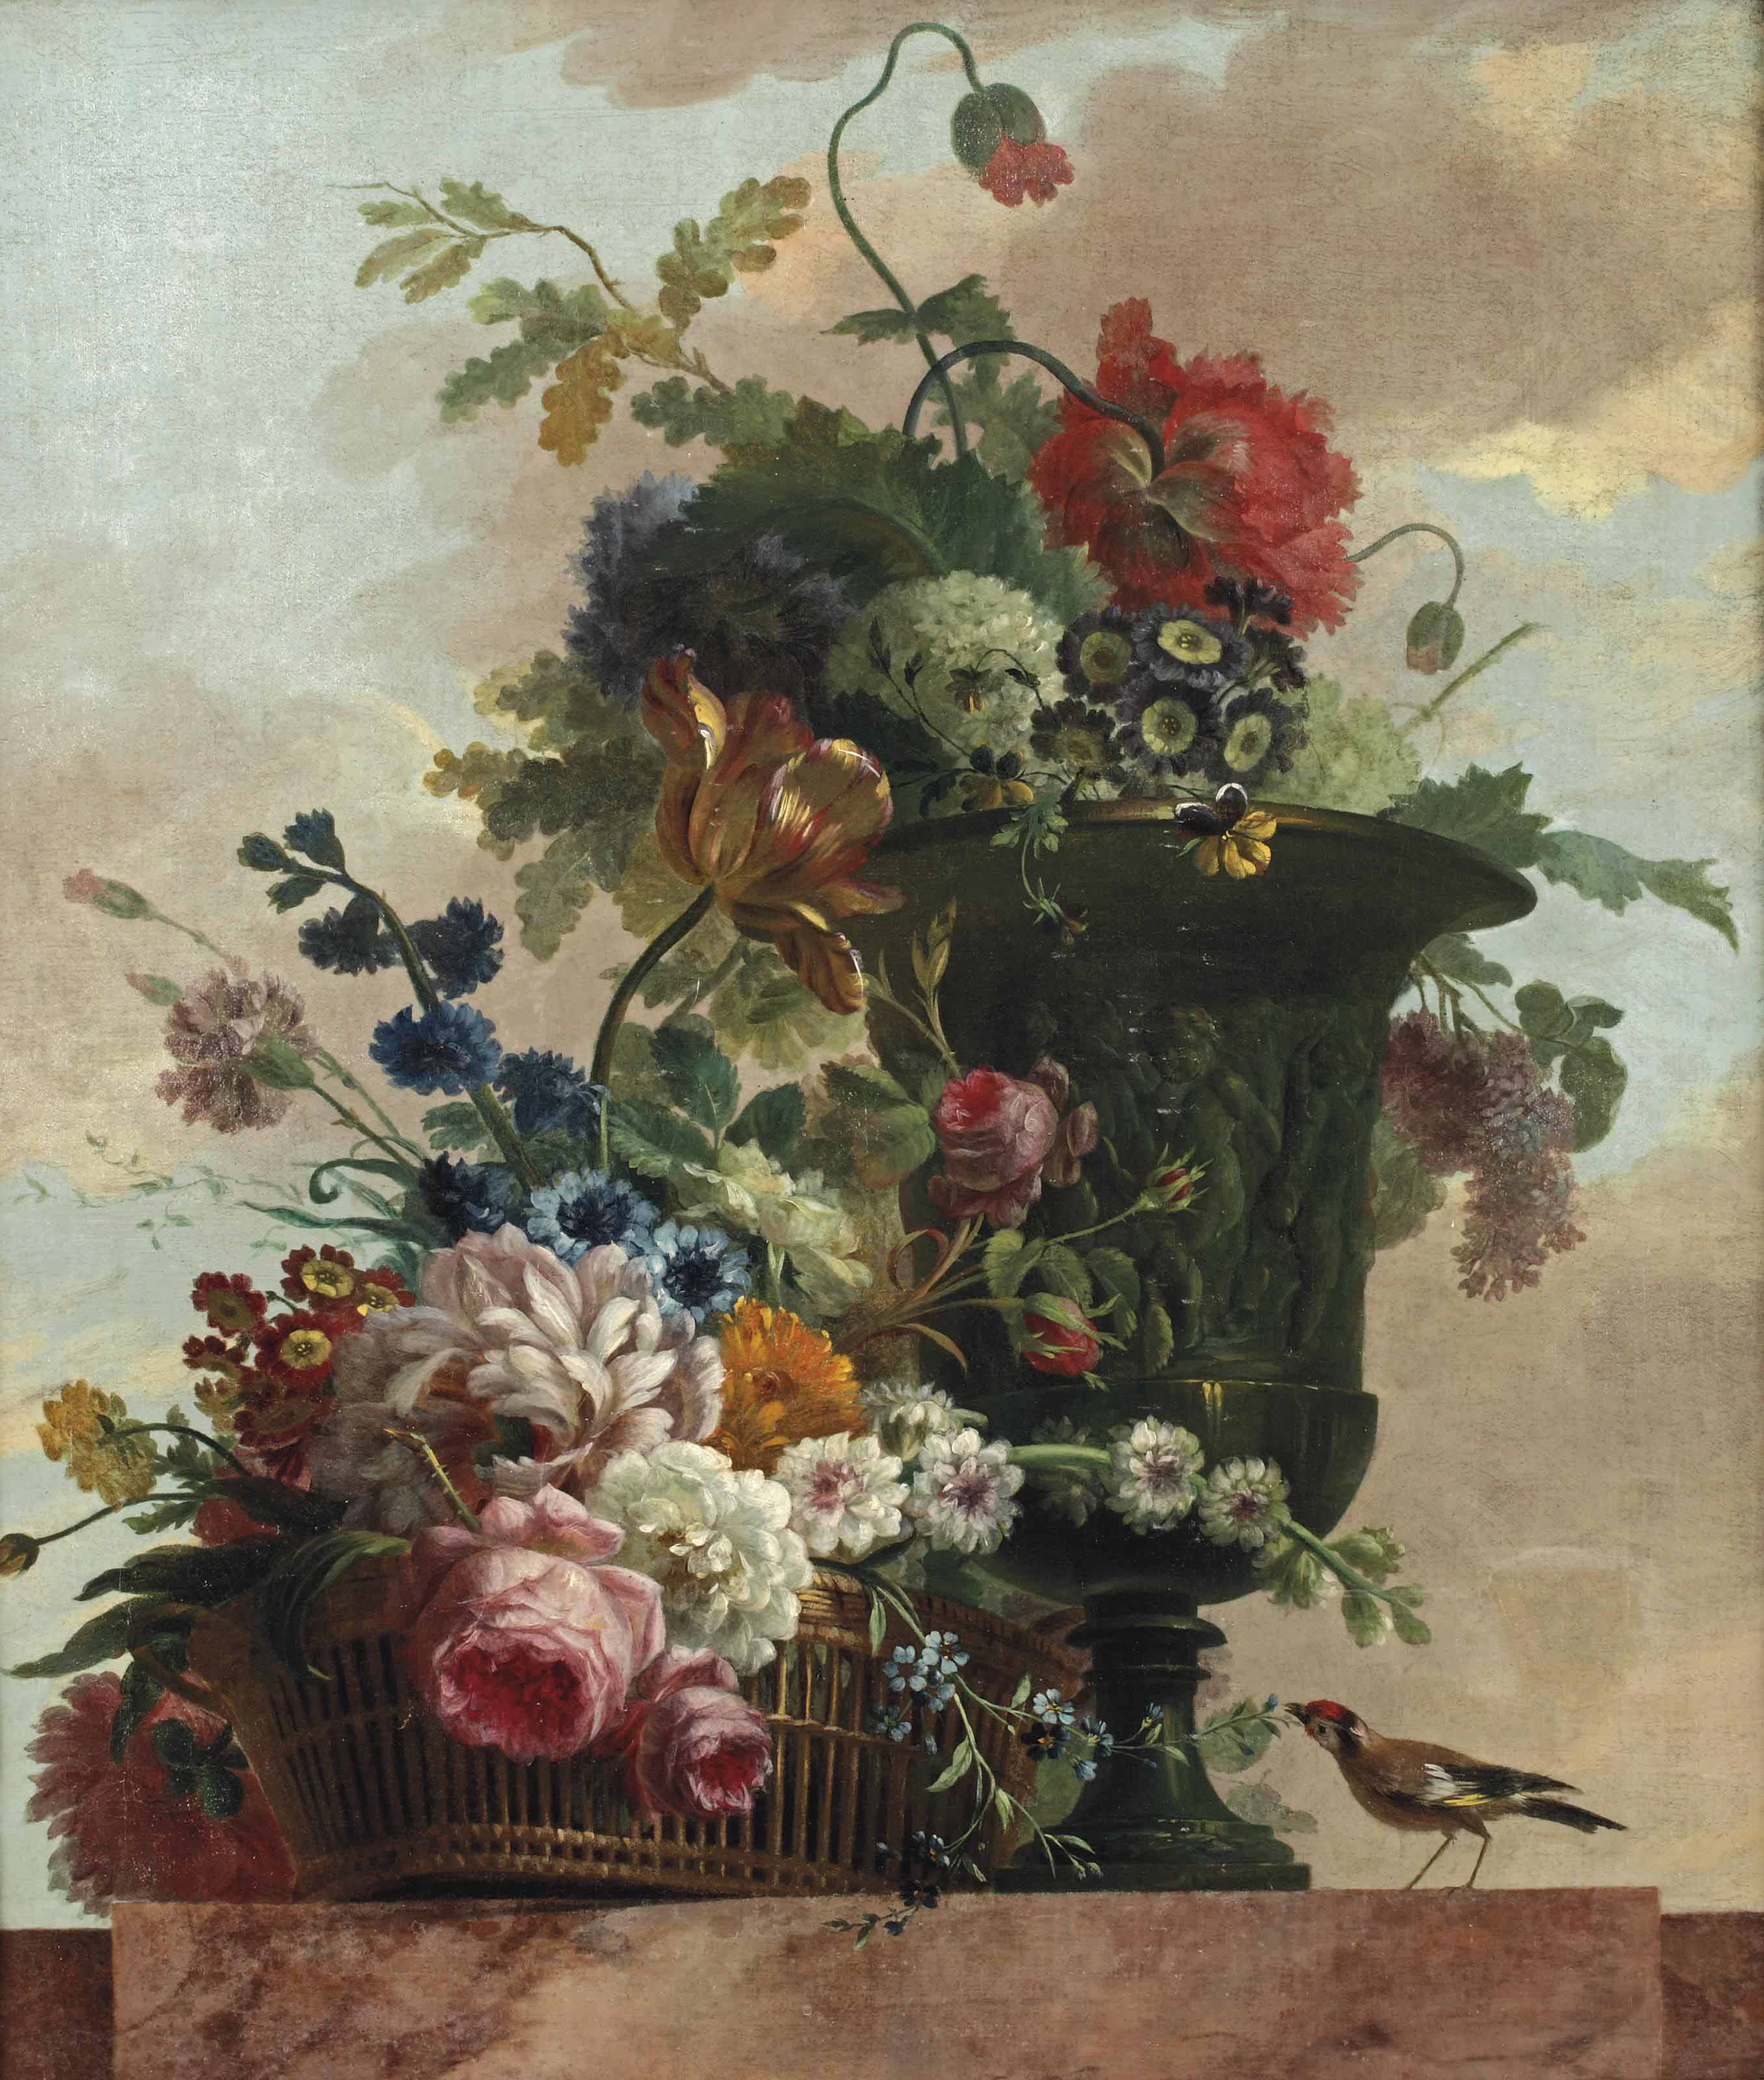 A wicker basket with roses, peonies and tulips and other flowers in a sculptured vase, with a bird on a marble ledge